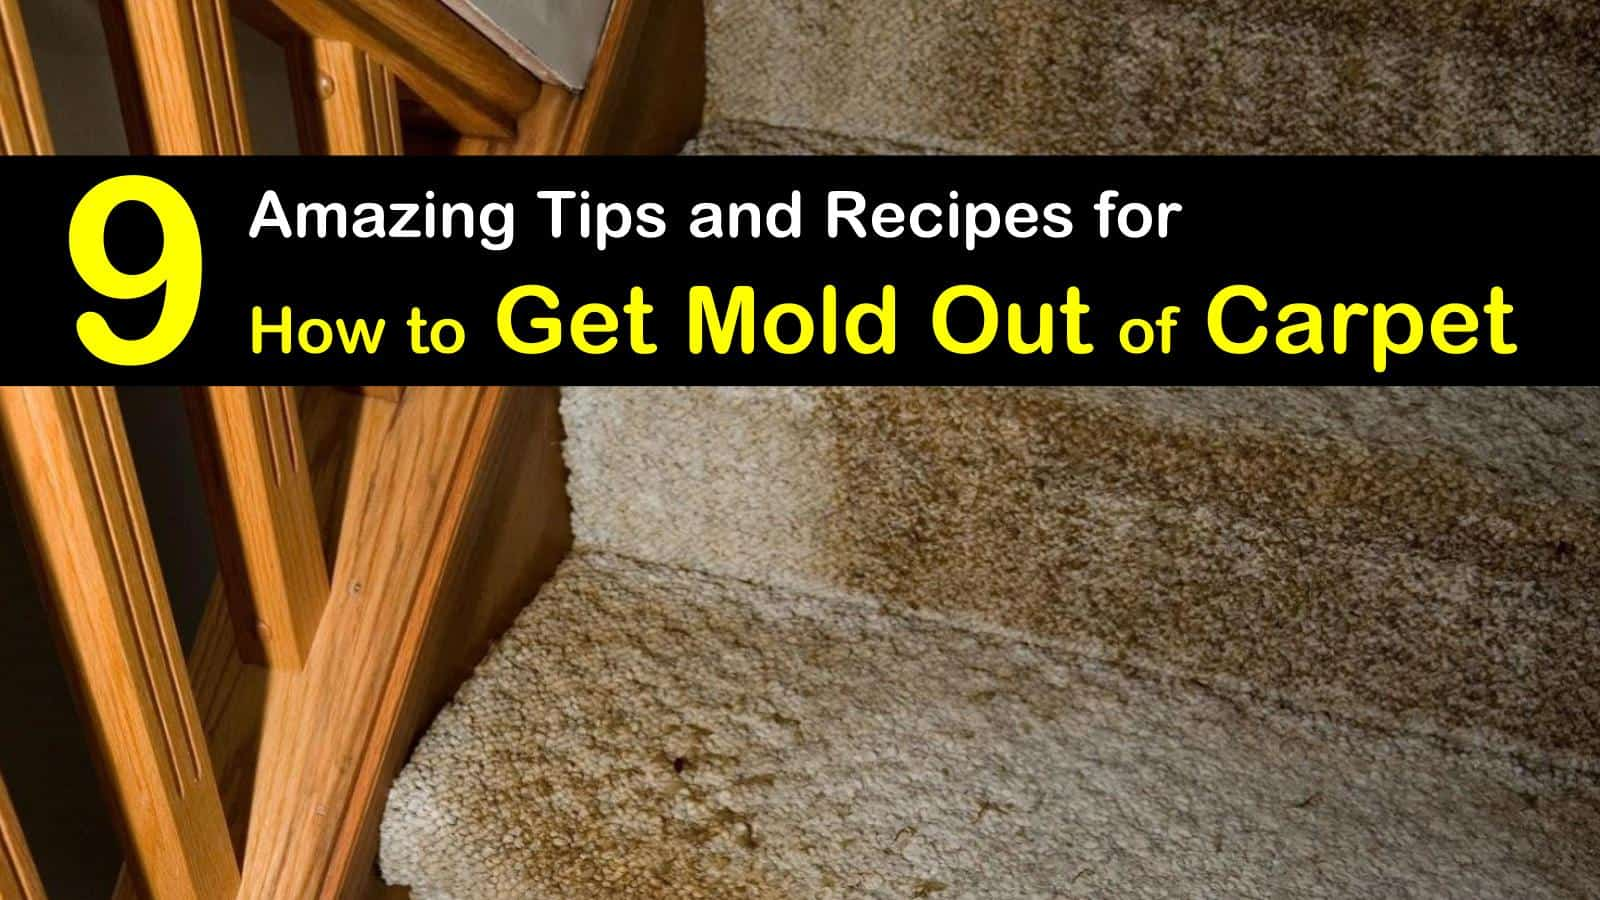 Vinegar Kill Mold Carpet